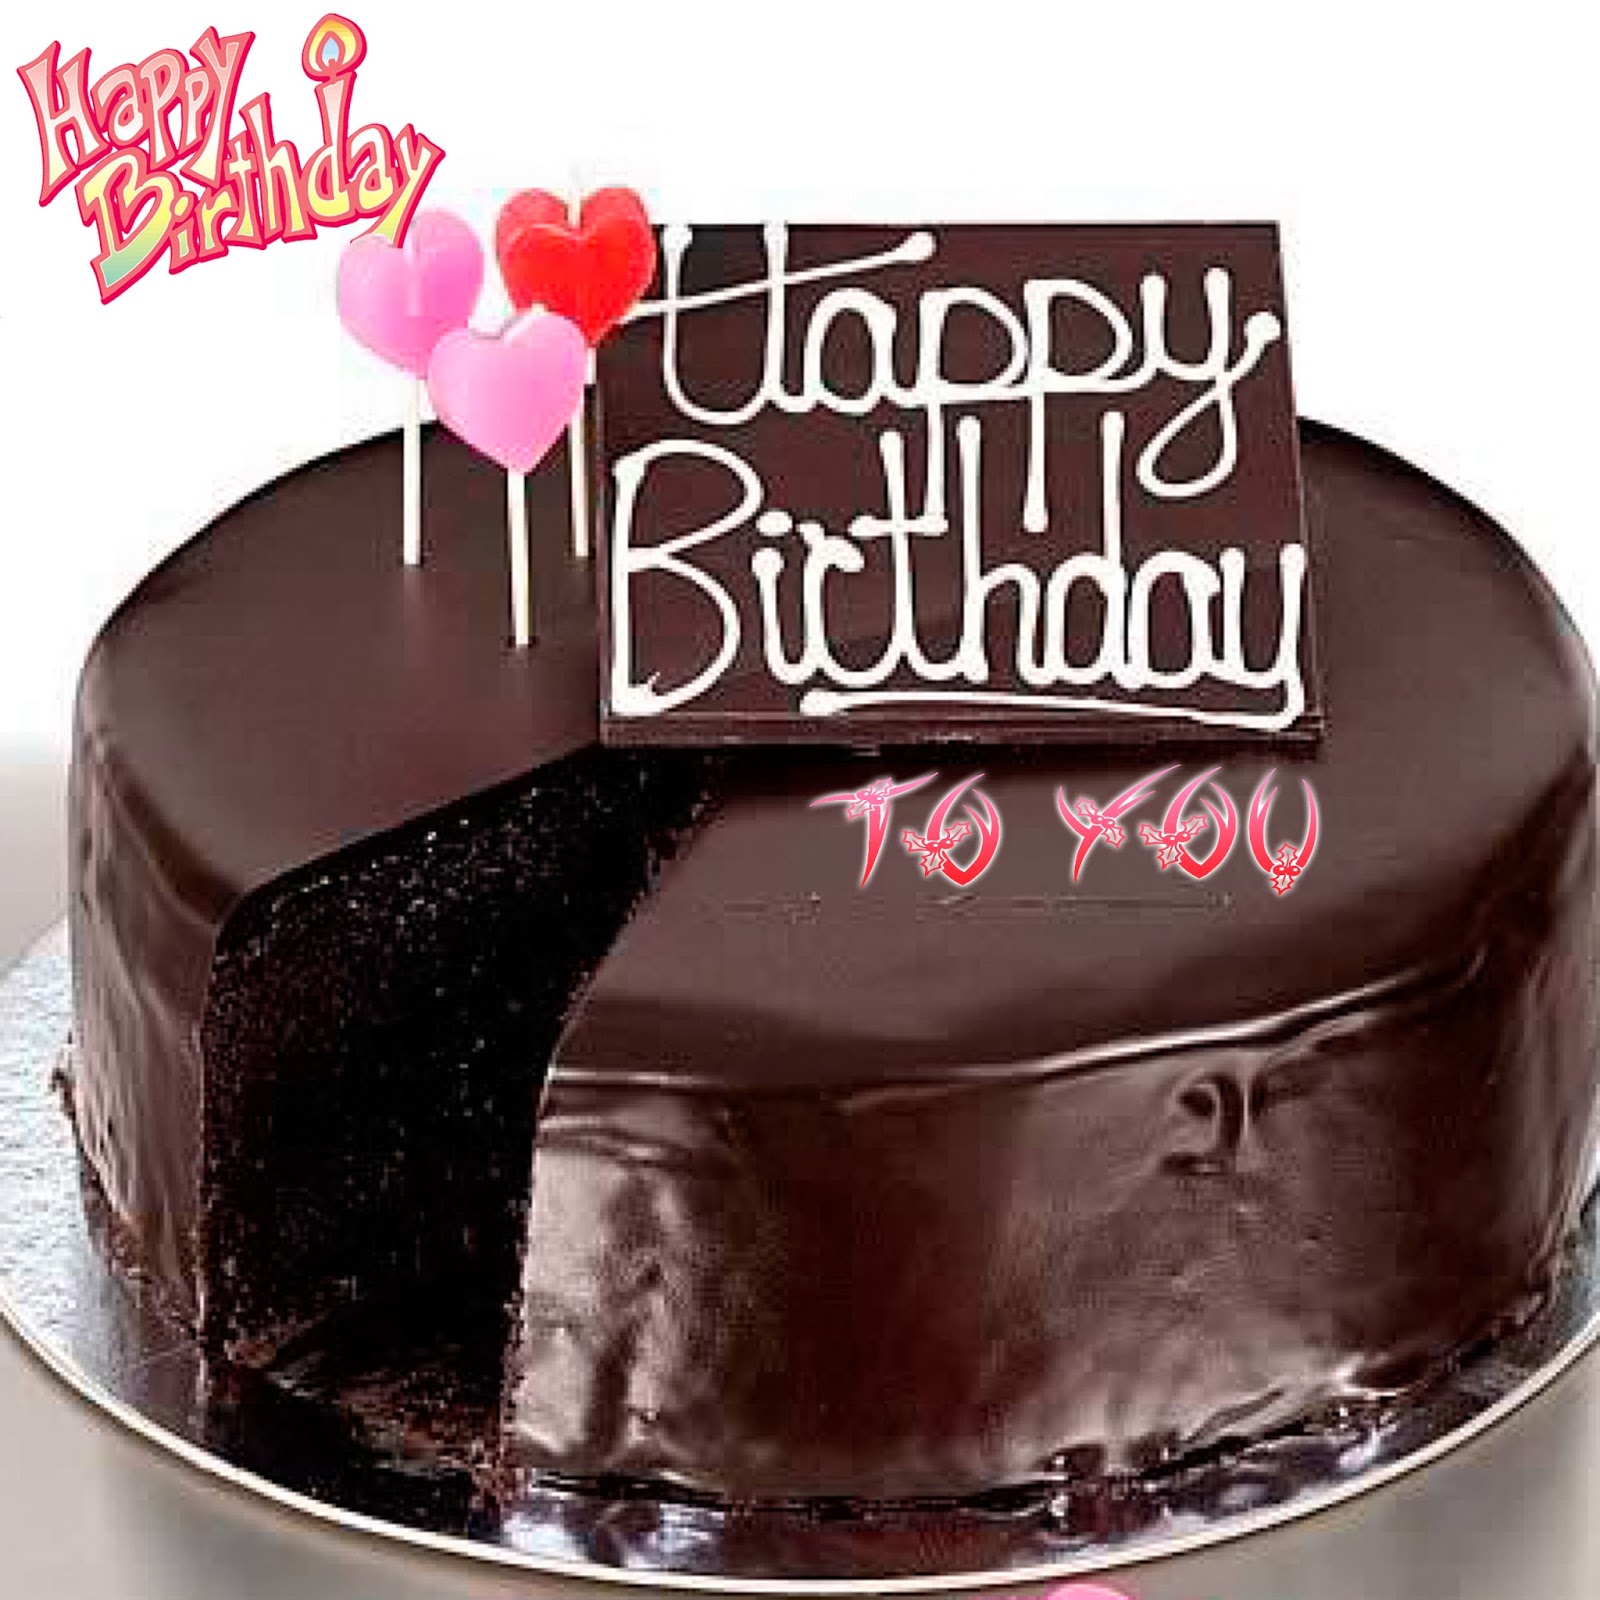 Happy-Birthday-Chocolate-Cake-Image-With-Wishes-Wide